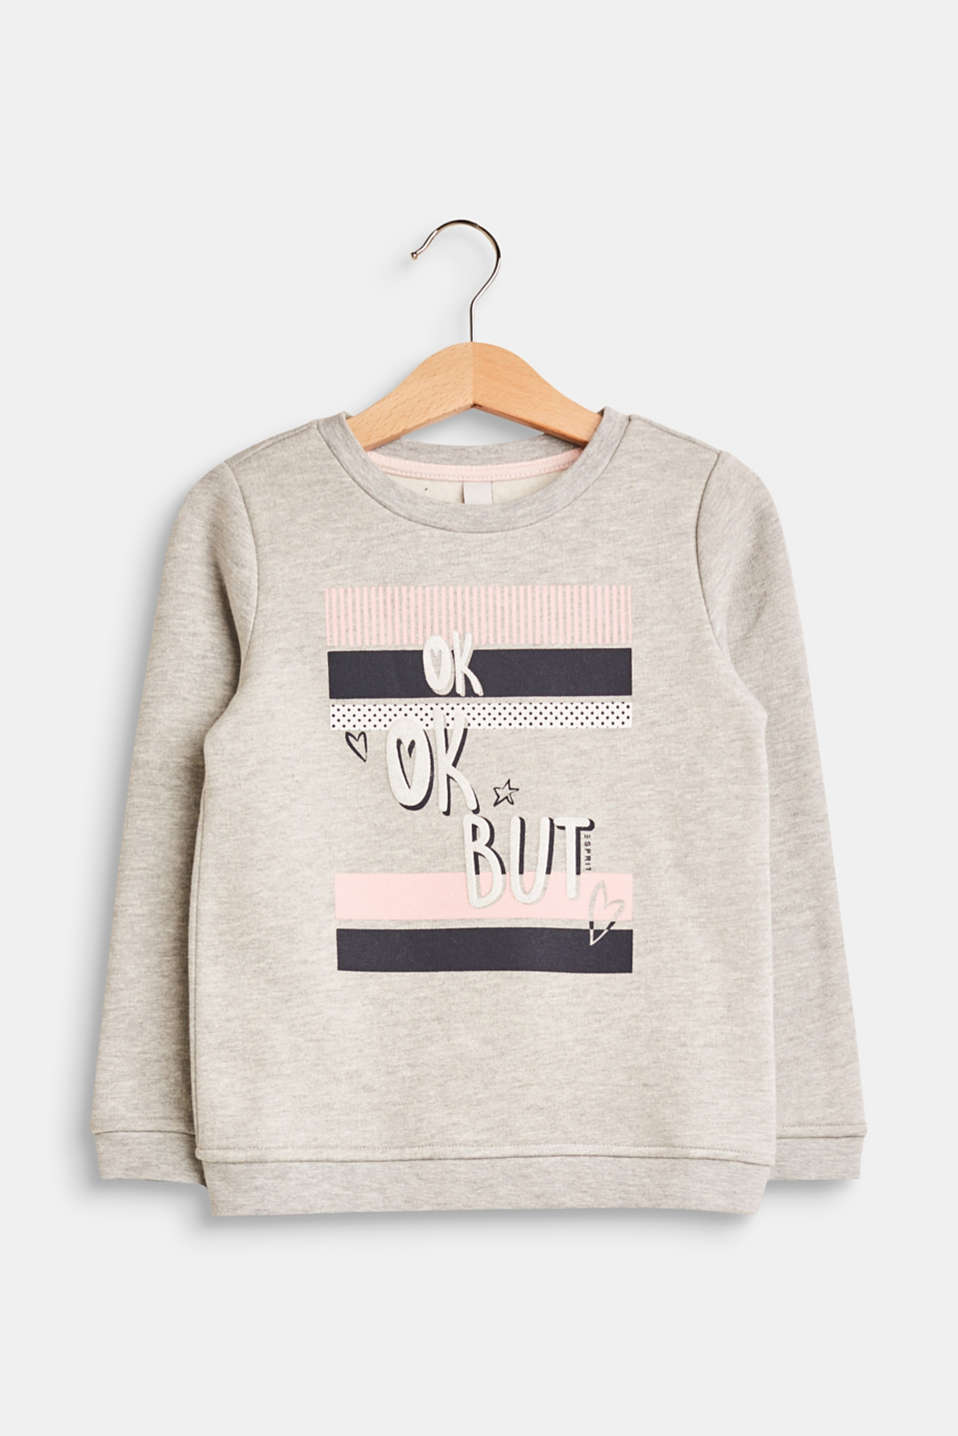 Esprit - Sweatshirt in blended cotton with a statement print